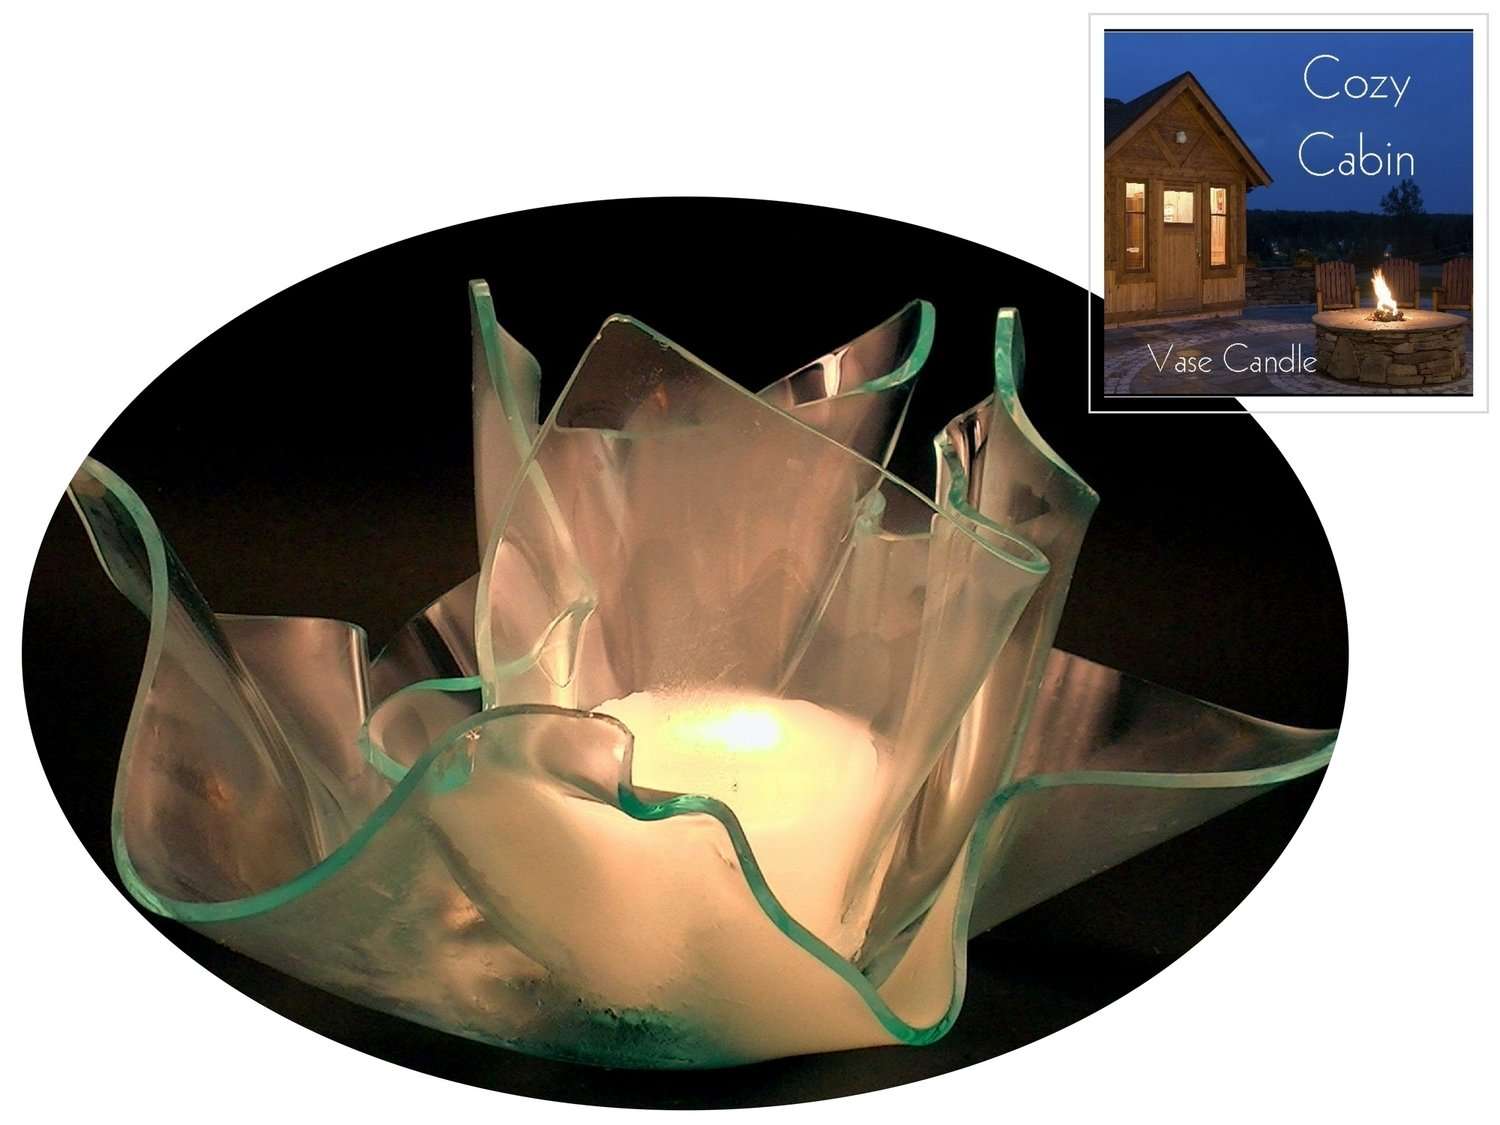 2 Cozy Cabin Candle Refills | Clear Satin Vase & Dish Set